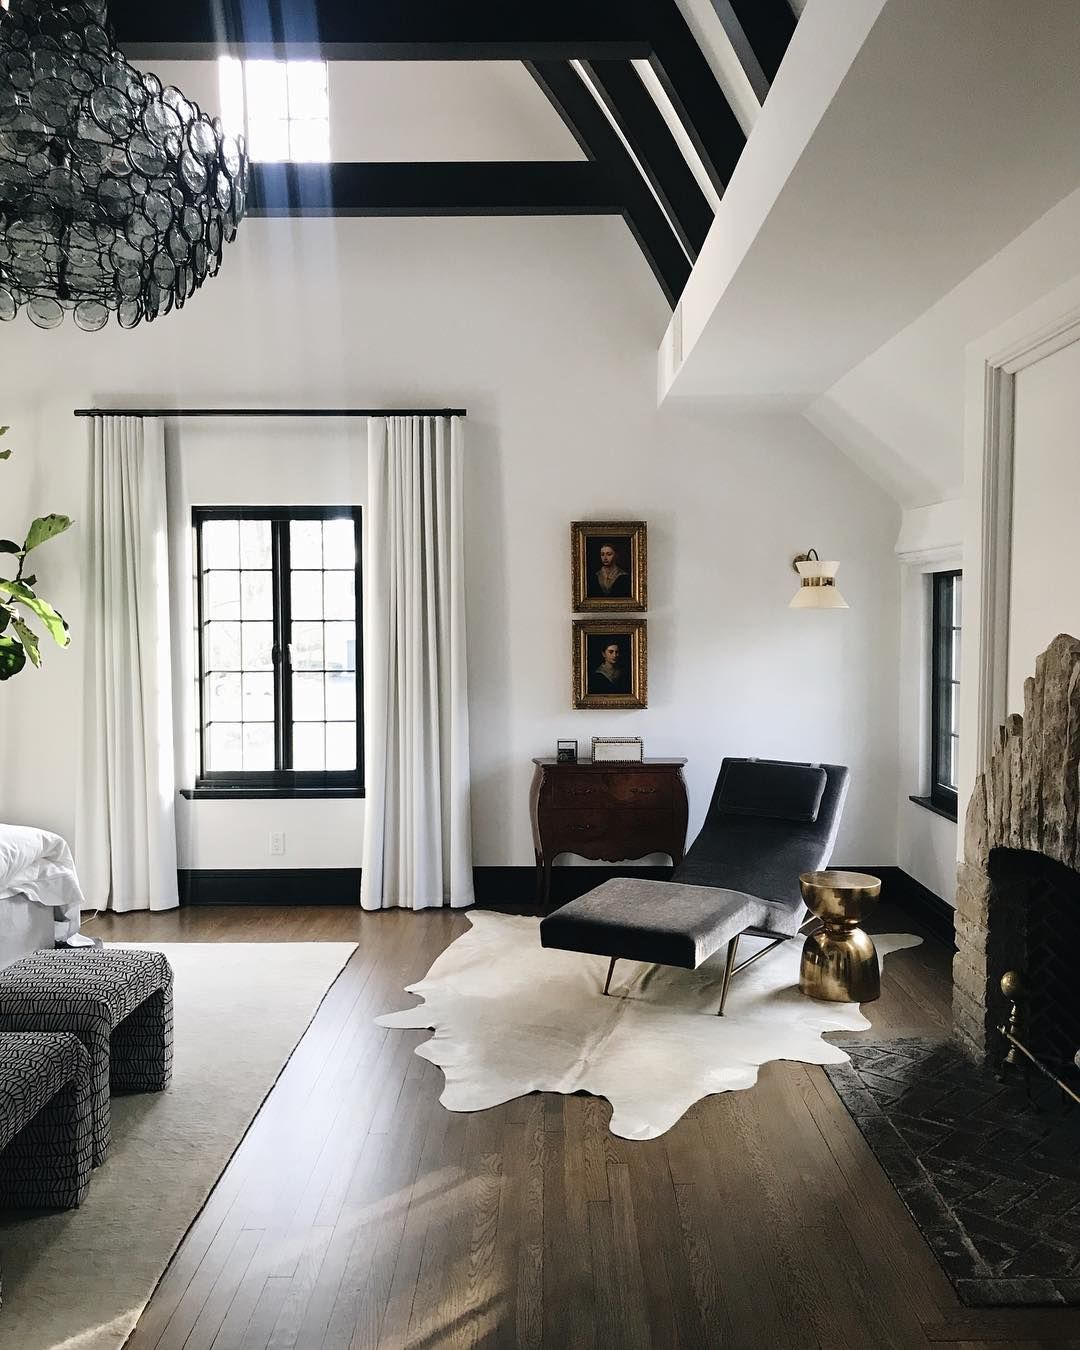 Modern Minimalist Master Bedroom With Cowhide Rug And Black Leather Chaise Lounge Home Mediterranean Home Decor Living Room Designs